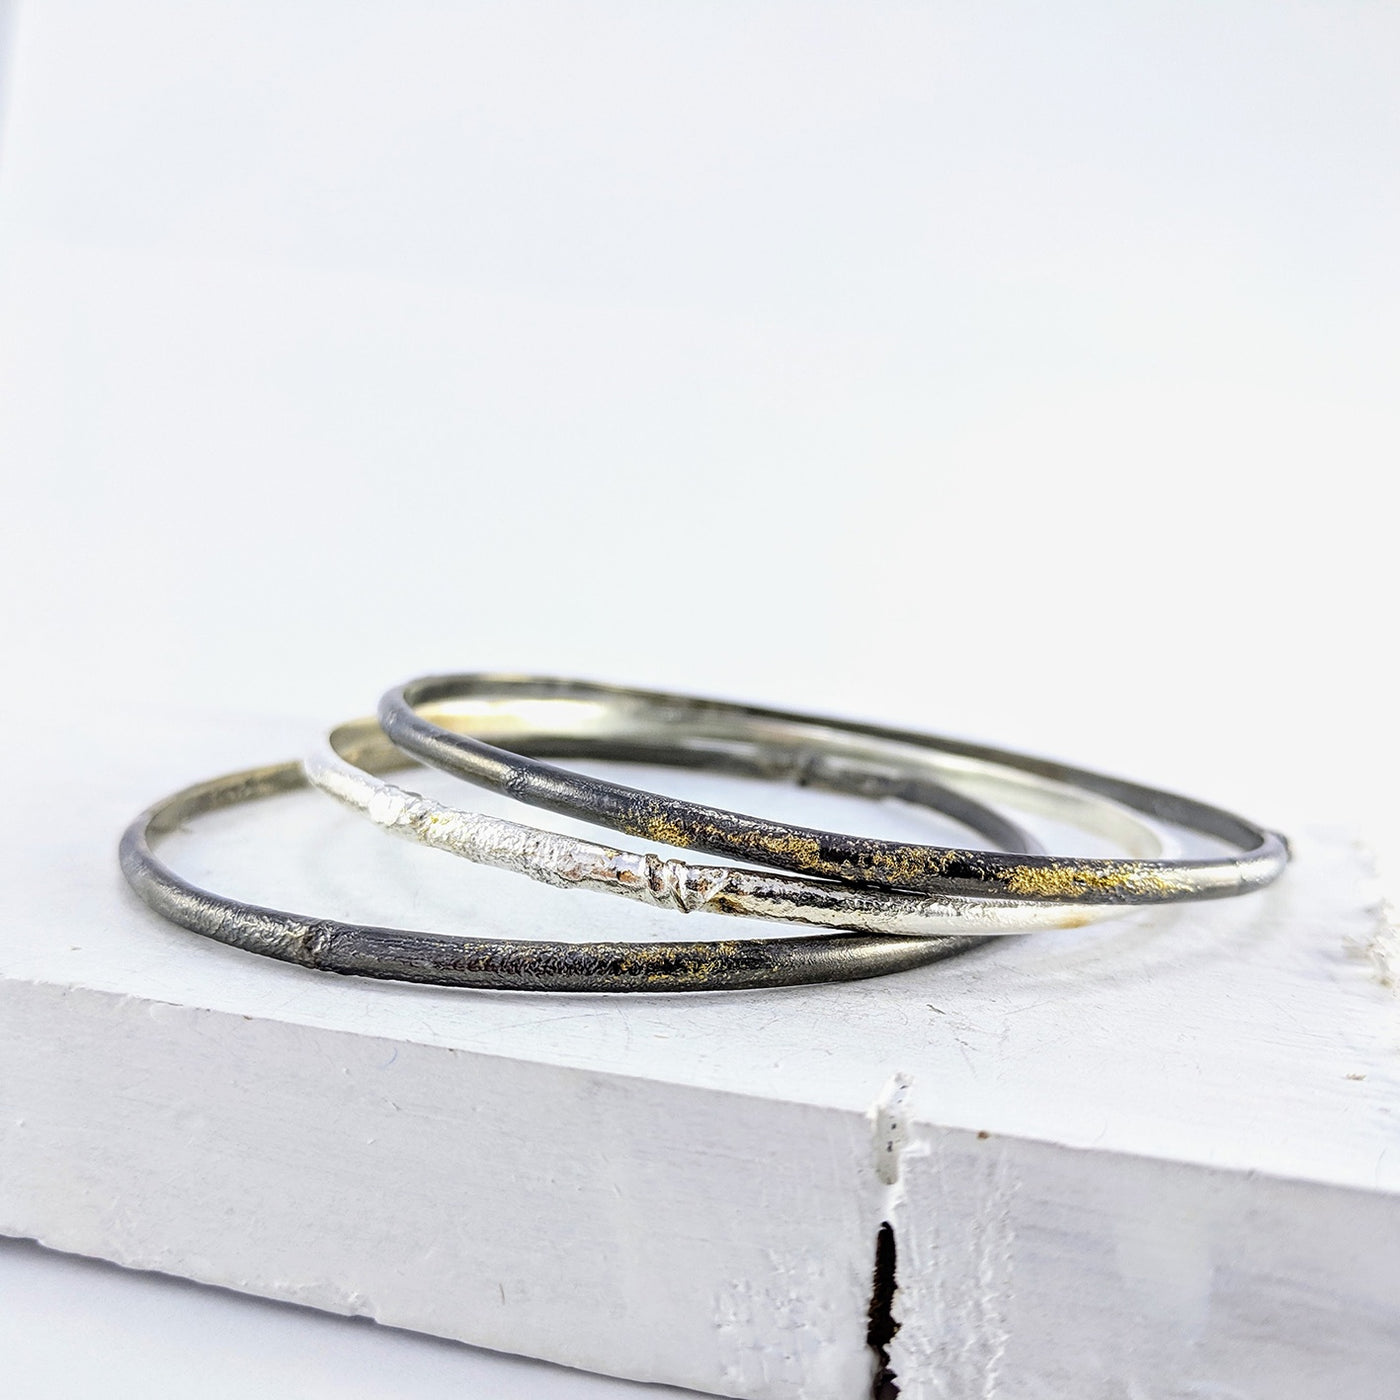 Glow Nook bangle - oxidised